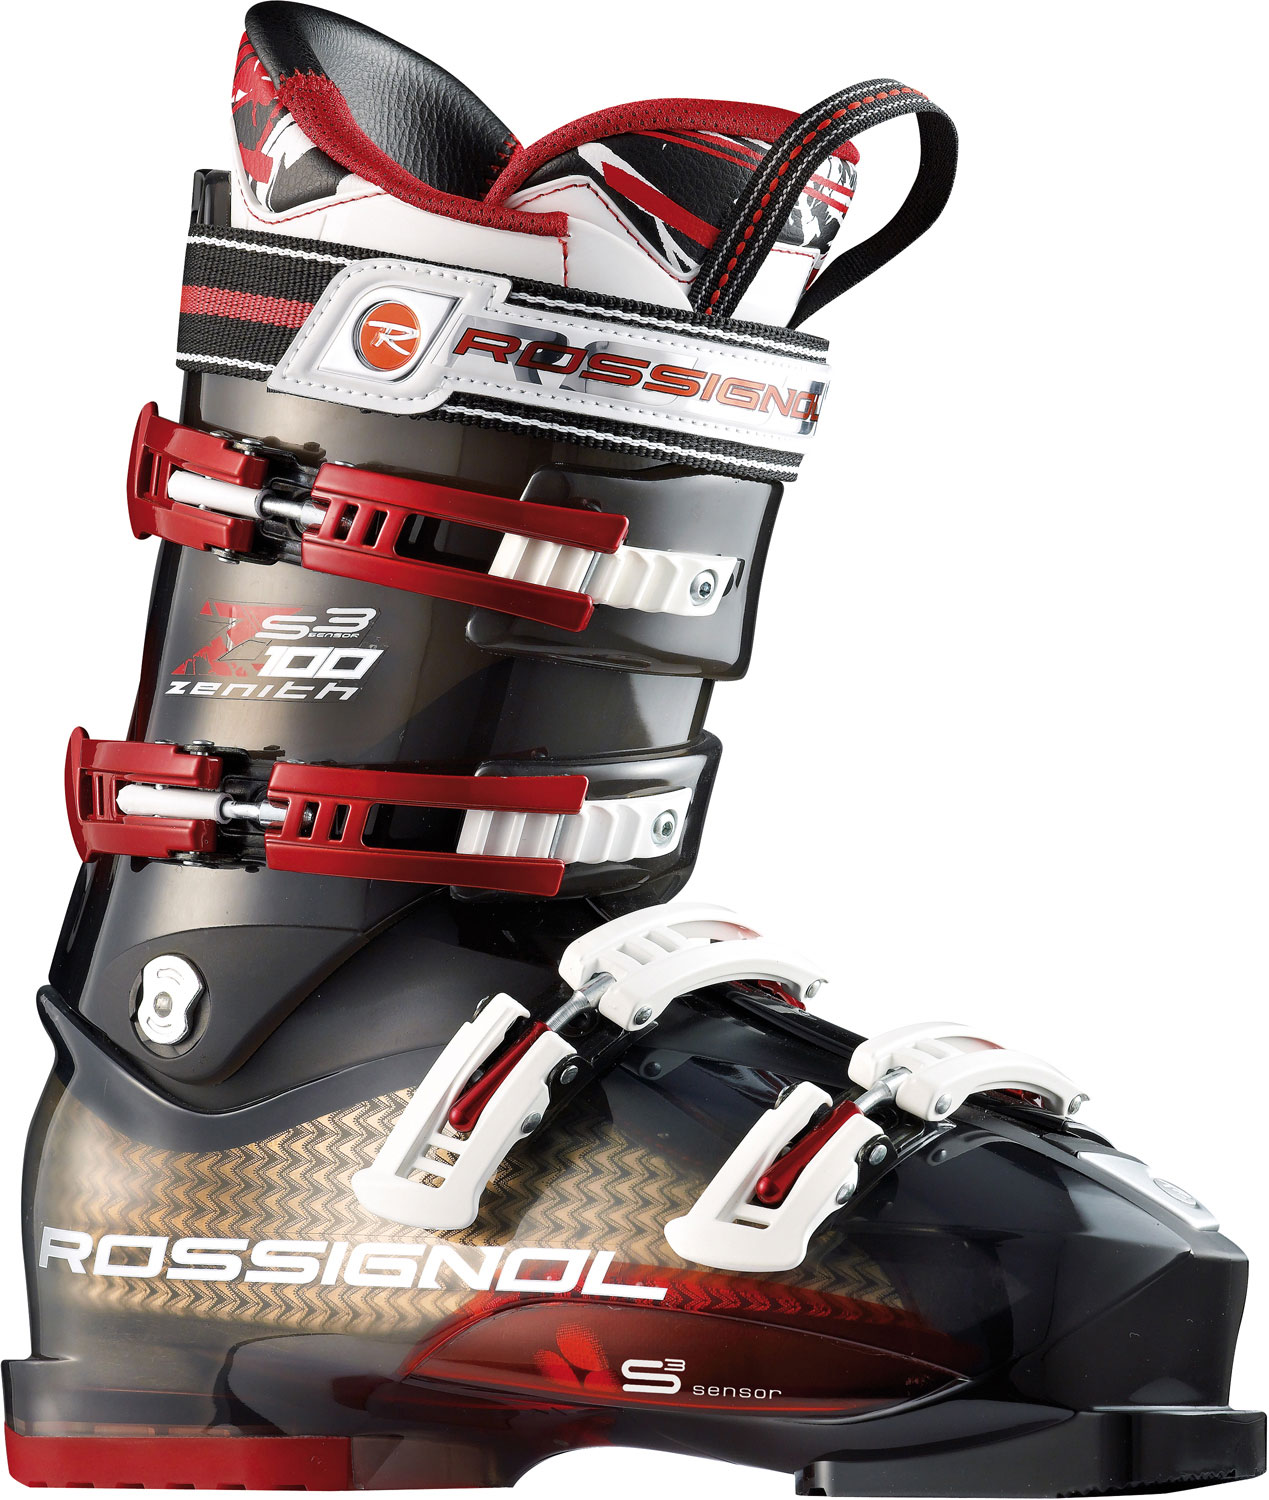 Ski Featuring an unusually articulate heel area; incredibly accurate pre-molded liner and direct sensory input between foot and shell, the 100mm-last Sensor3 shell may be the most compelling boot in its class. Through the use of a three-year, 3D imaging foot analysis project, Rossignol has created what may be the most versatile, accurate it for more feet on the market than any other boot.Key Features of the Rossignol Zenith Sensor3 100 Ski Boots: Pro Fit Liner: 1st true lasted liner; matches internal shell perfectly for best out-of-the box it. Padding: Pre-shaped precise padding holds the heel securely and is resistant to packing out One Piece Toe Box & Tongue: Seamless toe box eliminates pressure points around the toes to ensure warmth and comfort Instep Pocket: Soft pocket over instep bone for personalized it to provide comfort and circulation to toes Easy Entry Concept: Notches in lower shell allow for ultra easy entry and exit without compromising four-buckle boot performance. Sensor Concept: The foot's 3 balance points, including: the big toe, little toe and heel sit in closer proximity to the responsive poly-carbonate shell inserts for unprecedented feel and power. Neutral Stance: Gives skiers a stable and efficient stance to drive the ski through turns. Boot Board: Removable board, improves it and allows for an easier stance adjustment. Freeride boots use material to soften landings and absorb shock. Diagonal Buckles: Angled design that is effortless to use and pulls foot back into heel pocket. - $359.95